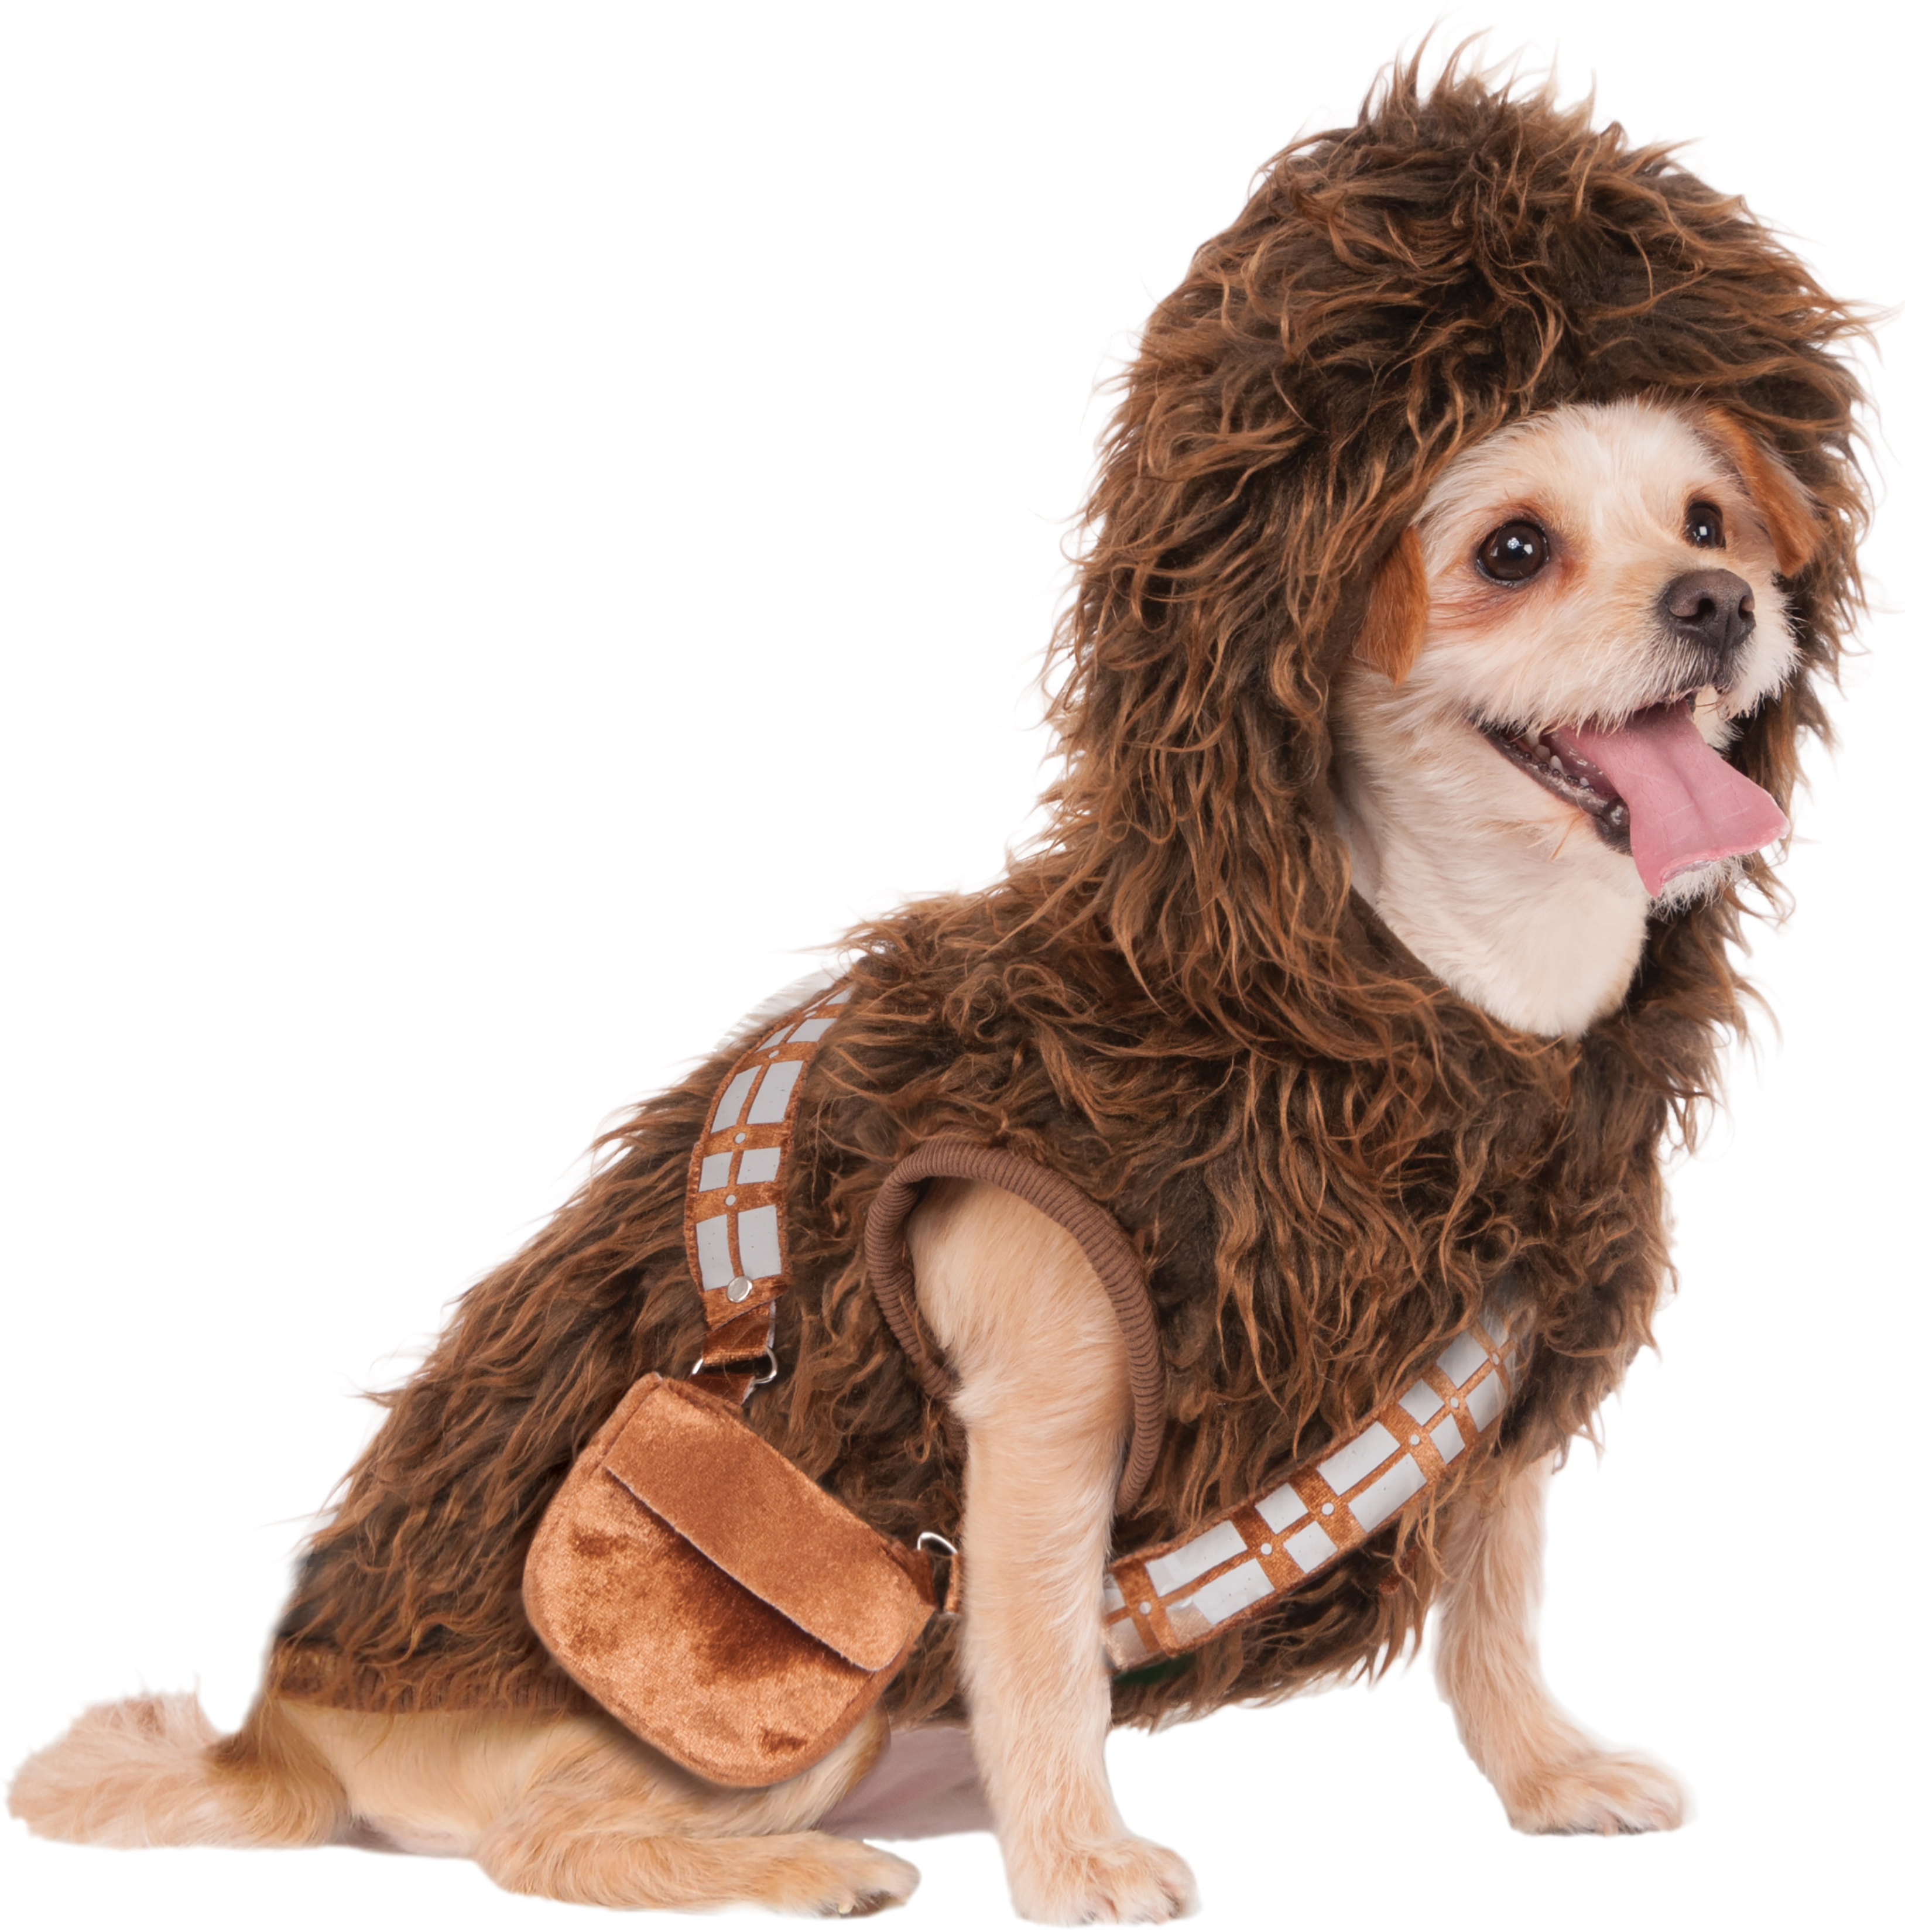 Rubieu0027s Chewbacca Hoodie Pet Costume - Medium  sc 1 st  Walmart : yoda dog costume pug  - Germanpascual.Com